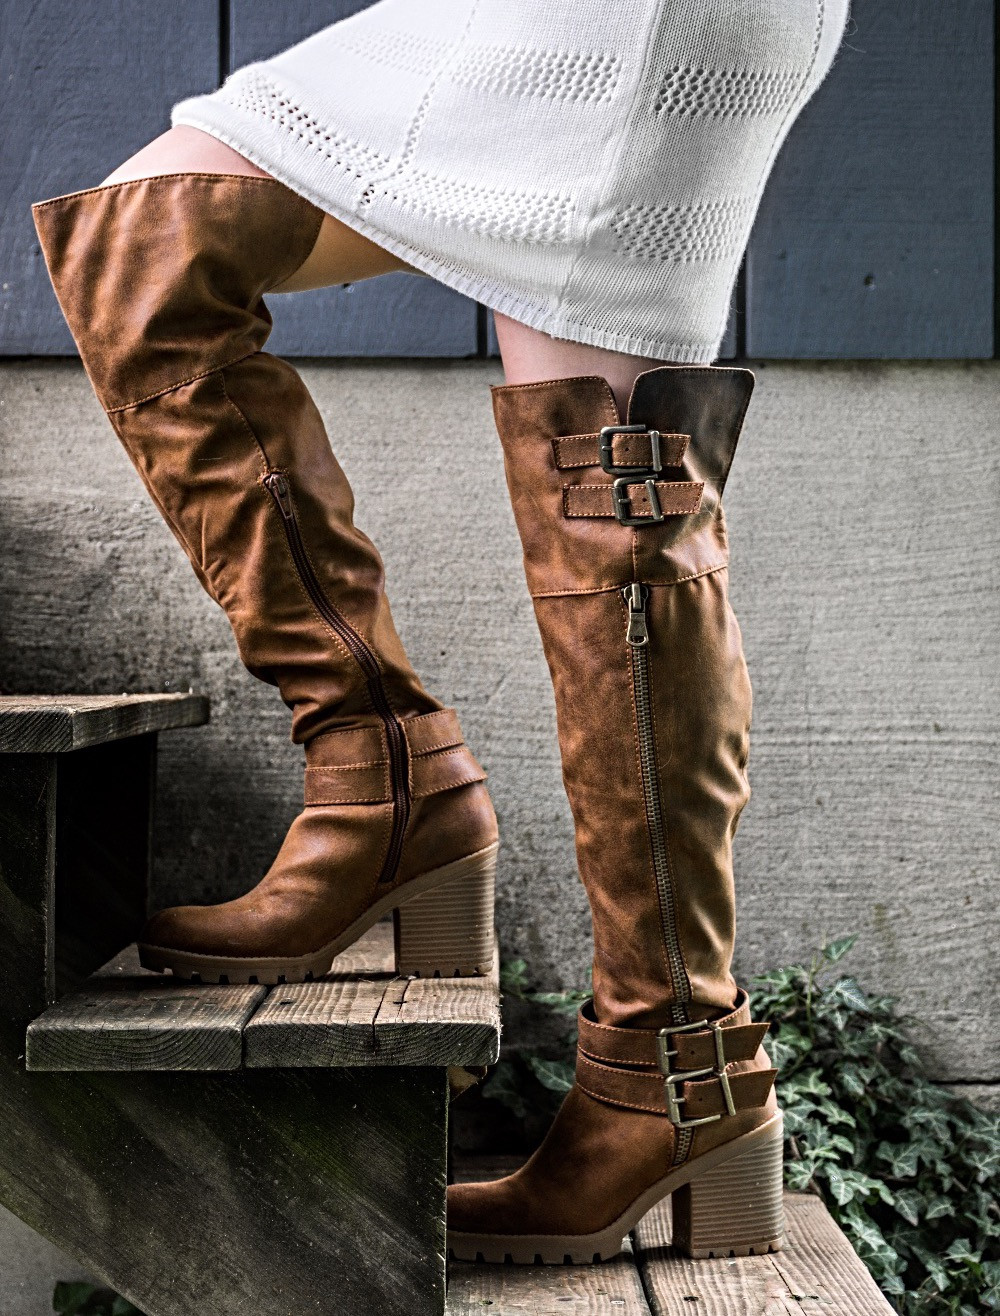 boots, fall, fall outfit, autumn, theheilstyle, April M. Heil, White Mountain, shoes, White Mountain Shoes, white dress, blazer, dressy, pretty, blonde, happy, photography, outdoors, Pennsylvania, fashion blog, blogger, top bloggers, top fashion bloggers